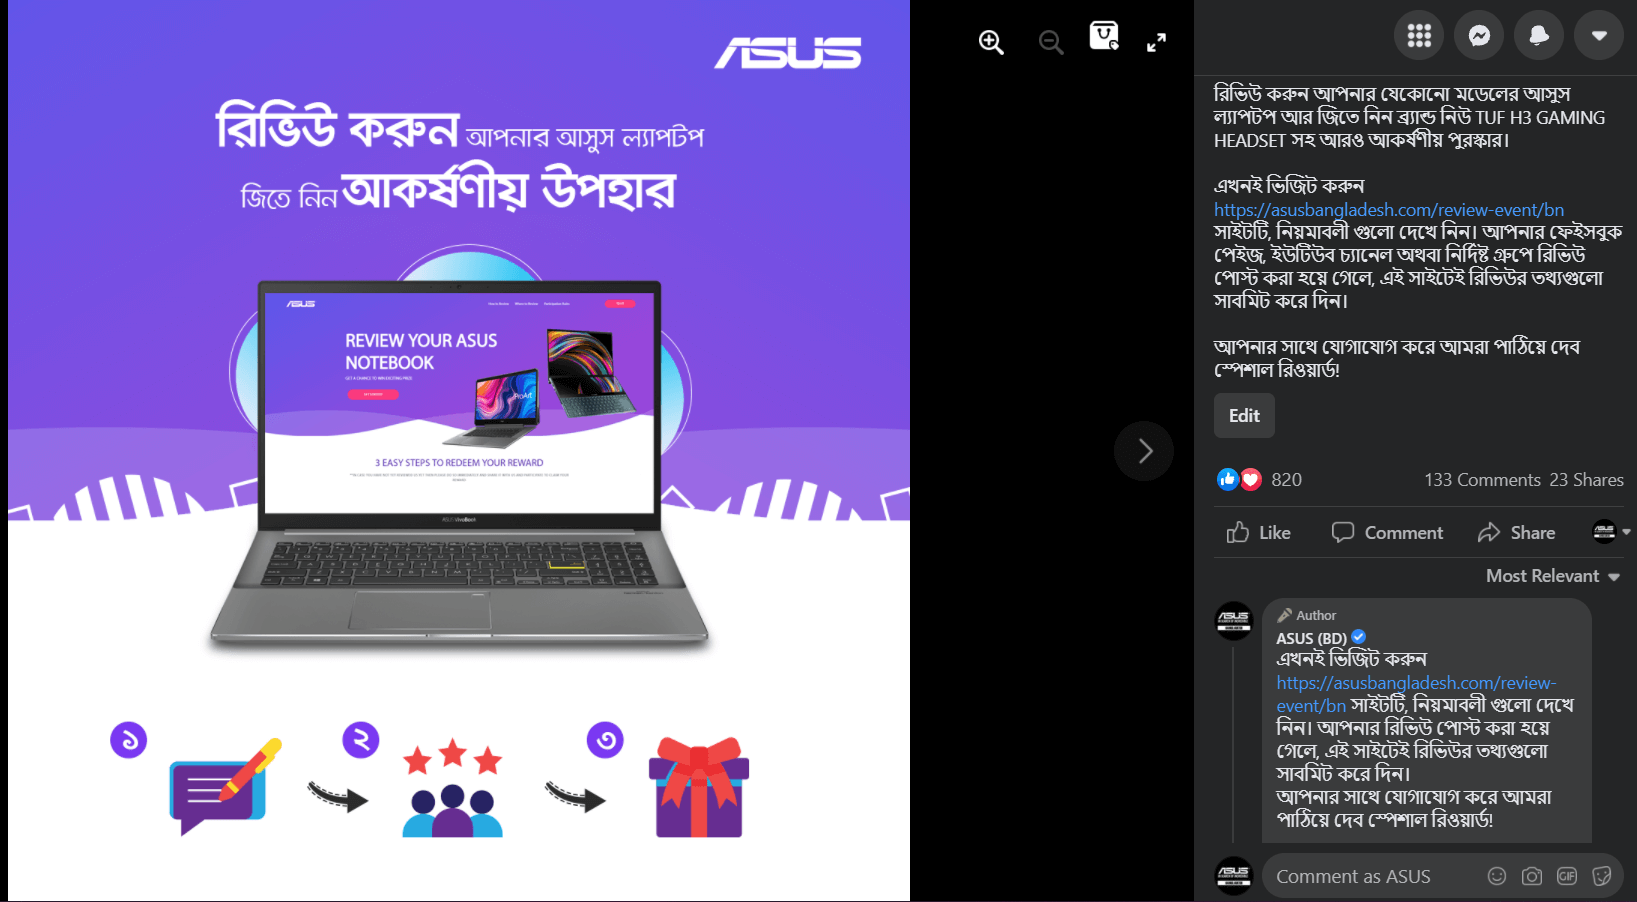 Laptop review user generated content campaign Bangla social post